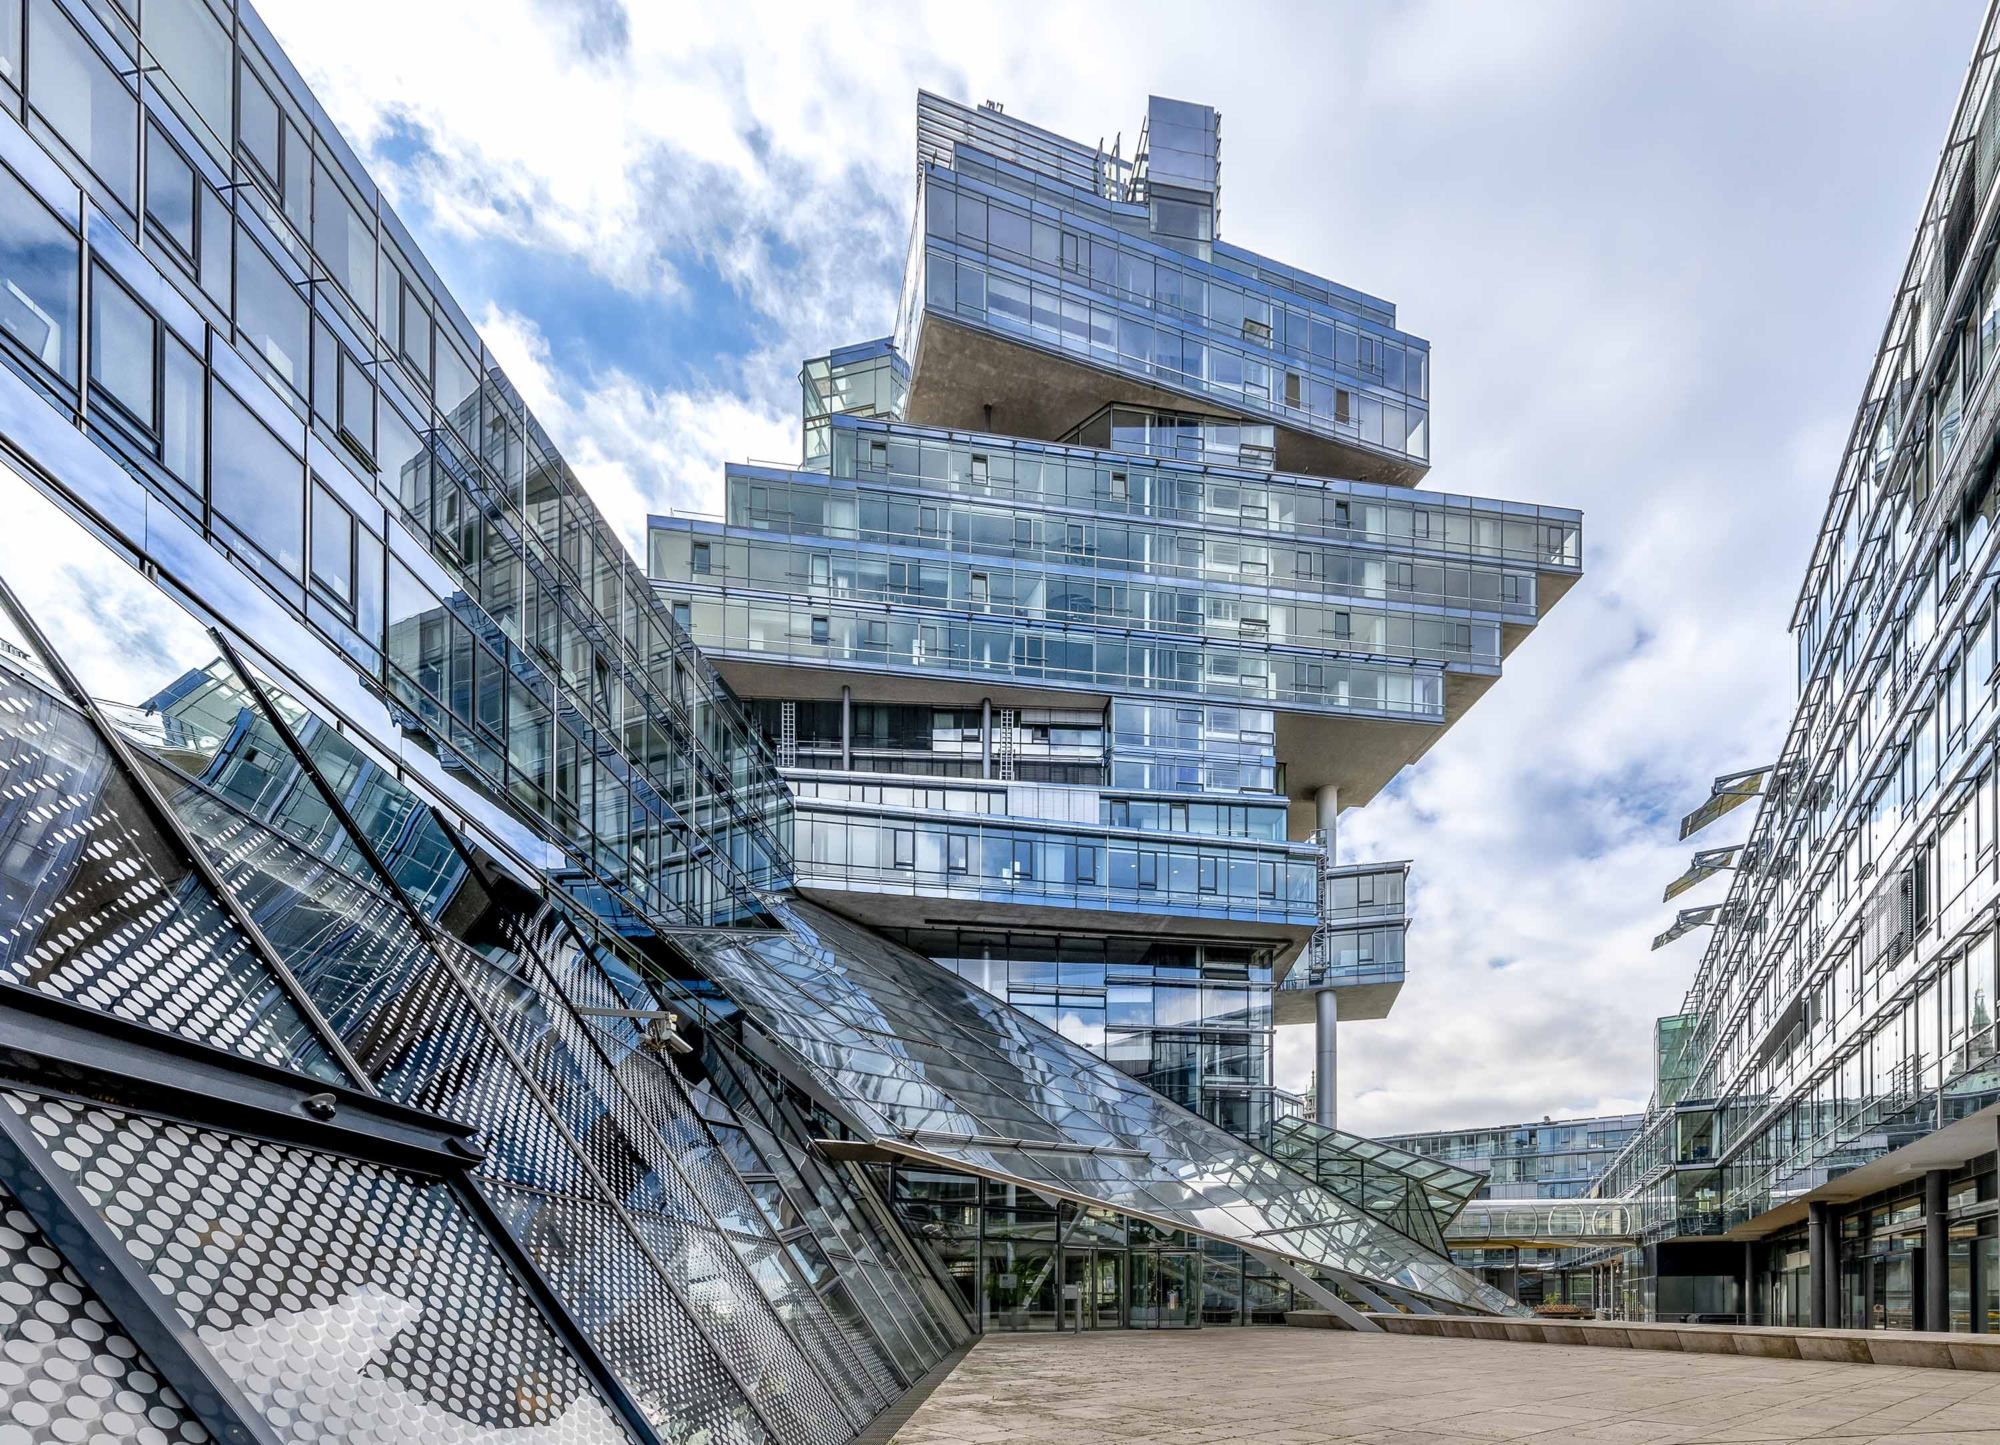 Deconstructivist building of the German Bank Nord:LB in Hannover, Germany 200929wc859785-Edit